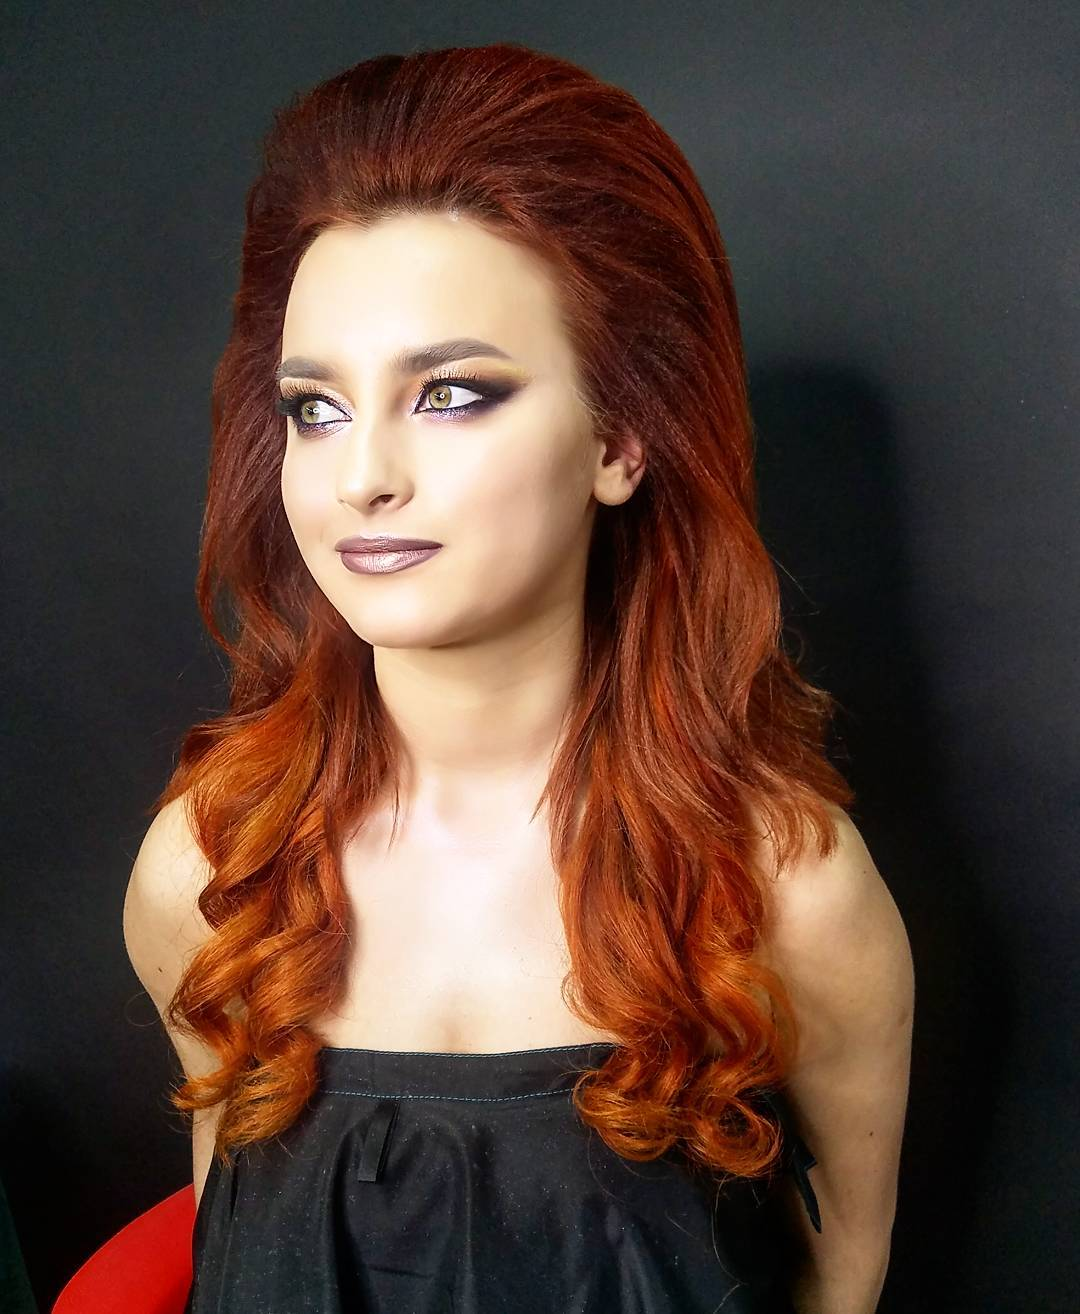 Wavy Layered Cut with Voluminous Backcombed Top and Vibrant Red Ombre for Date Nights or Prom ...